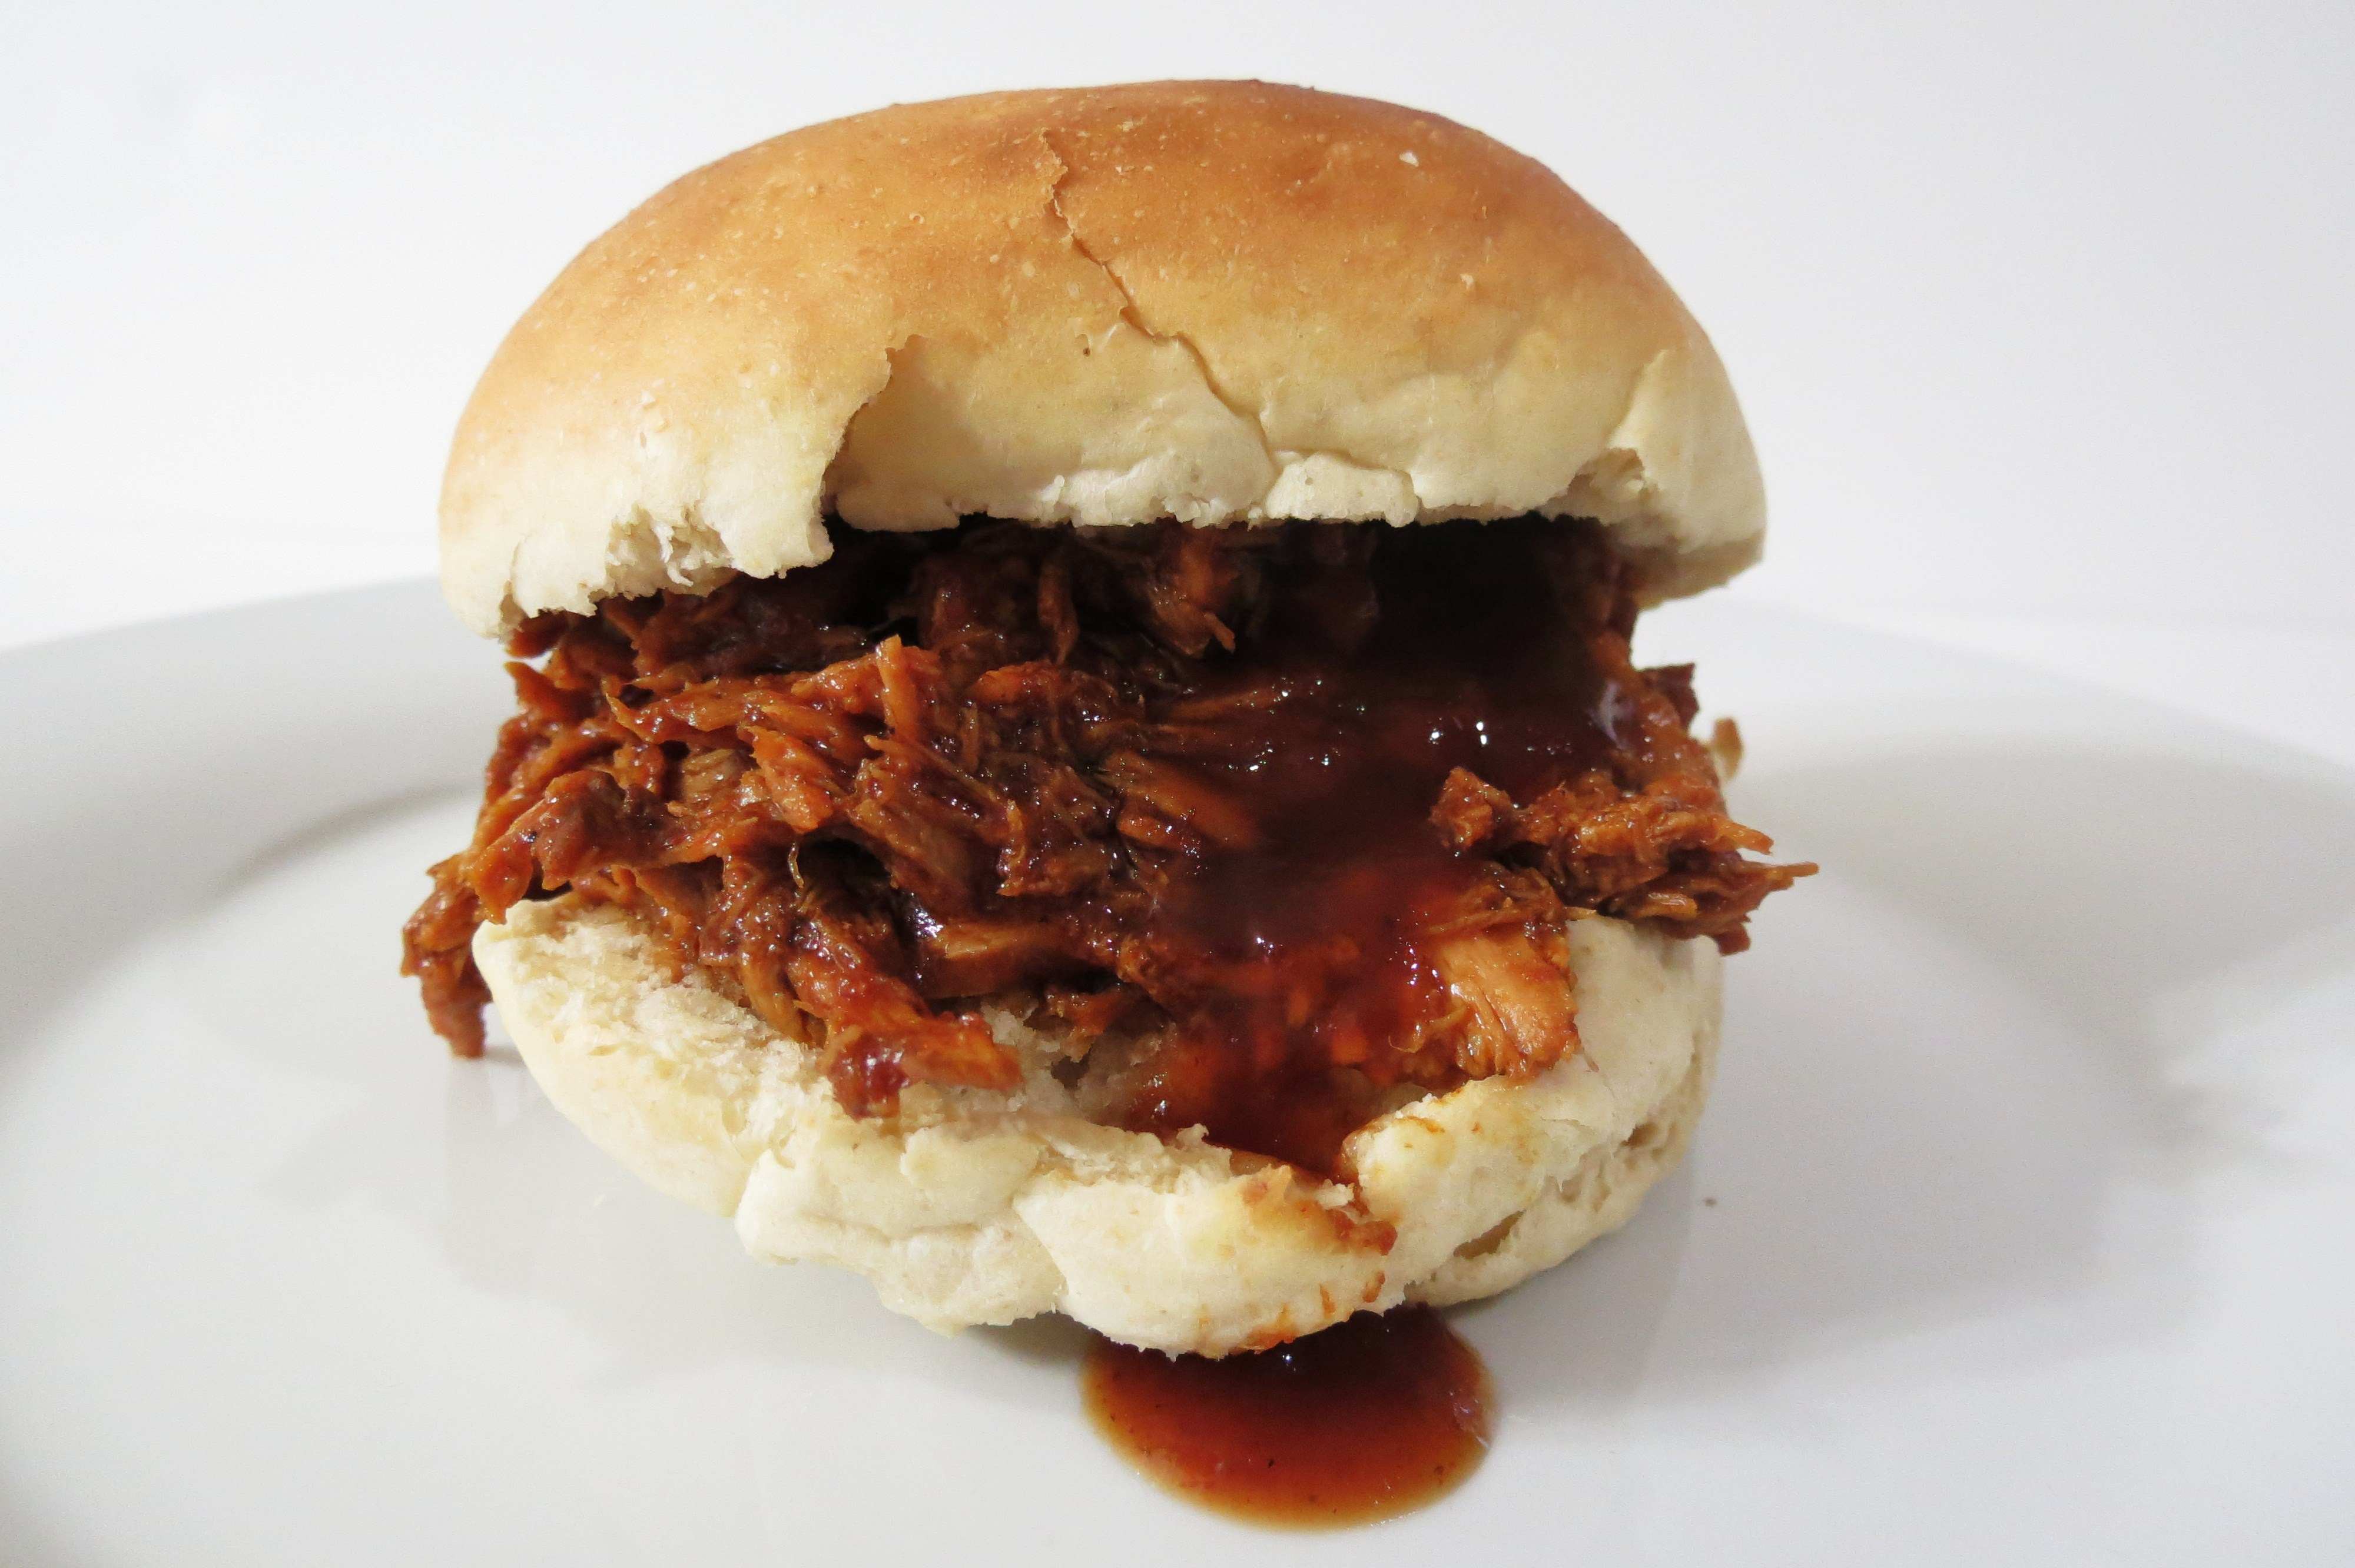 Shredded Barbecue Chicken and Homemade Rolls